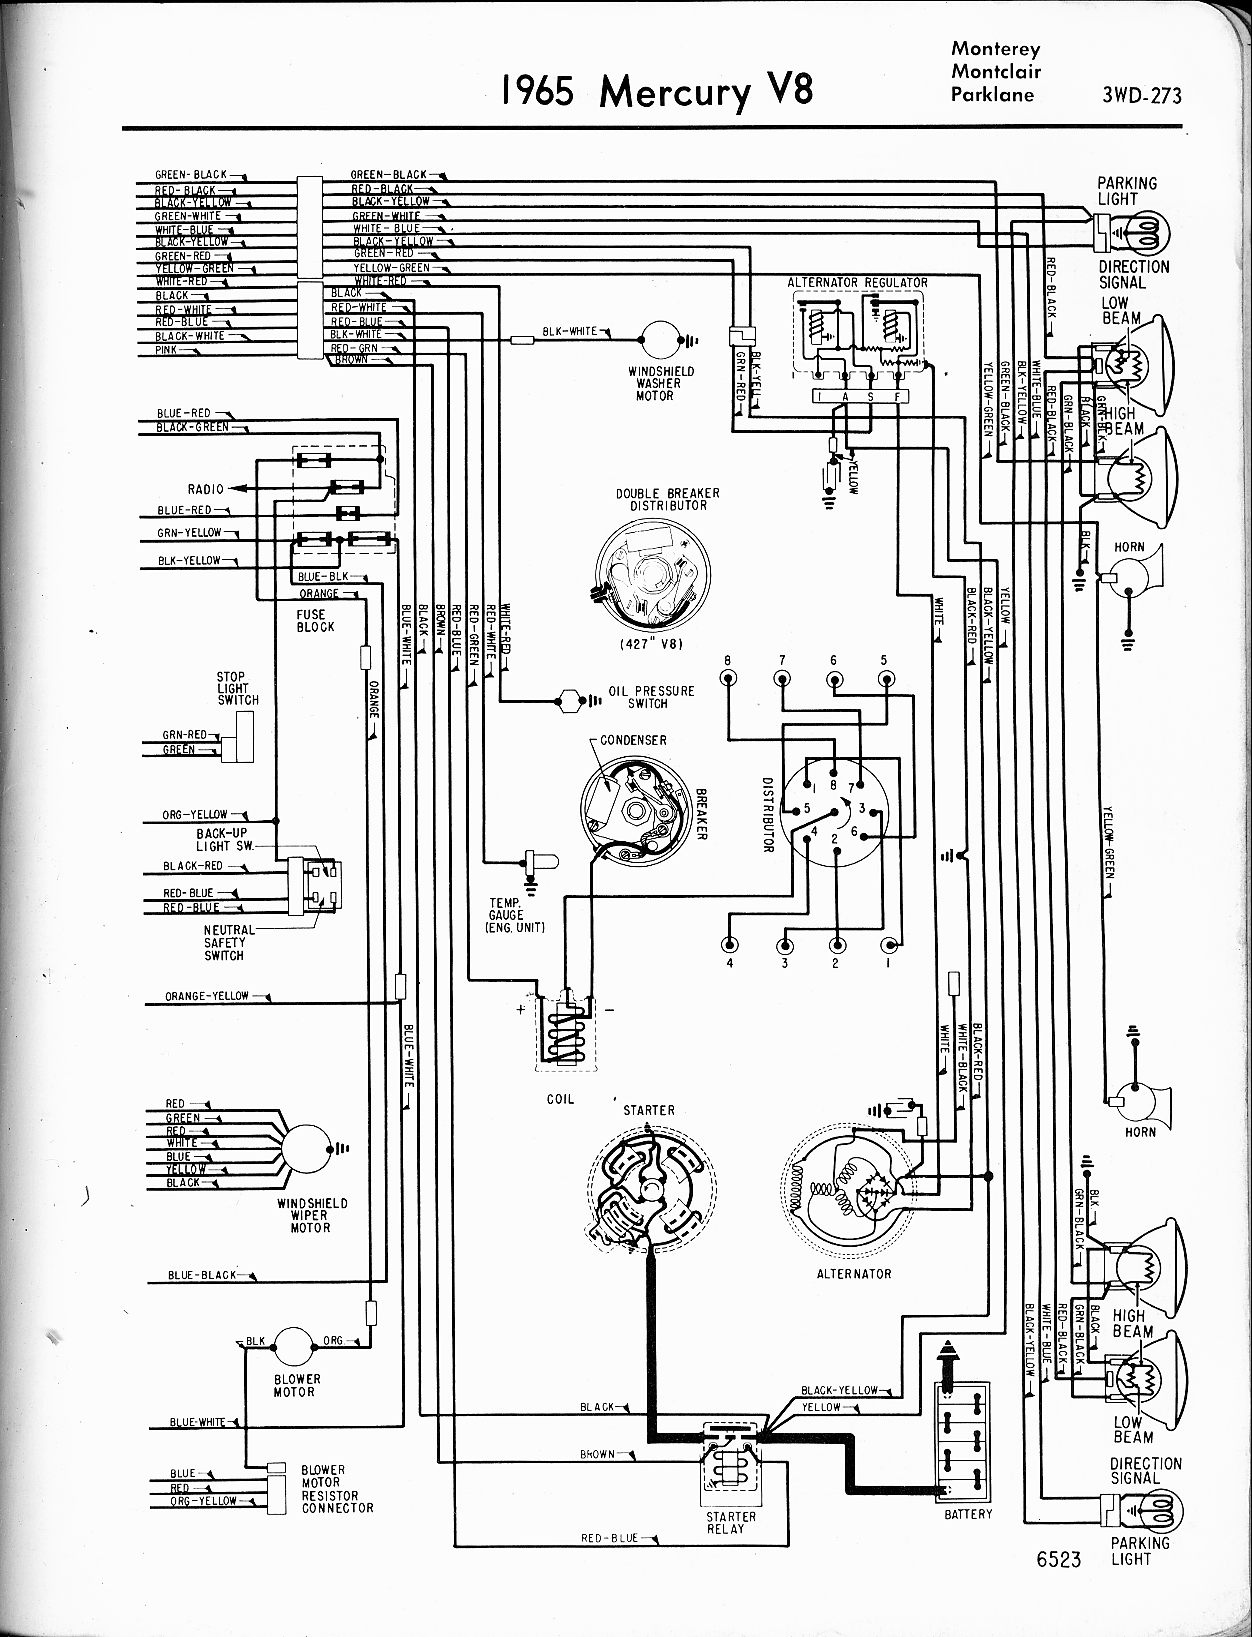 1966 chevy nova wiring diagram wwwstevesnovasitecom forums